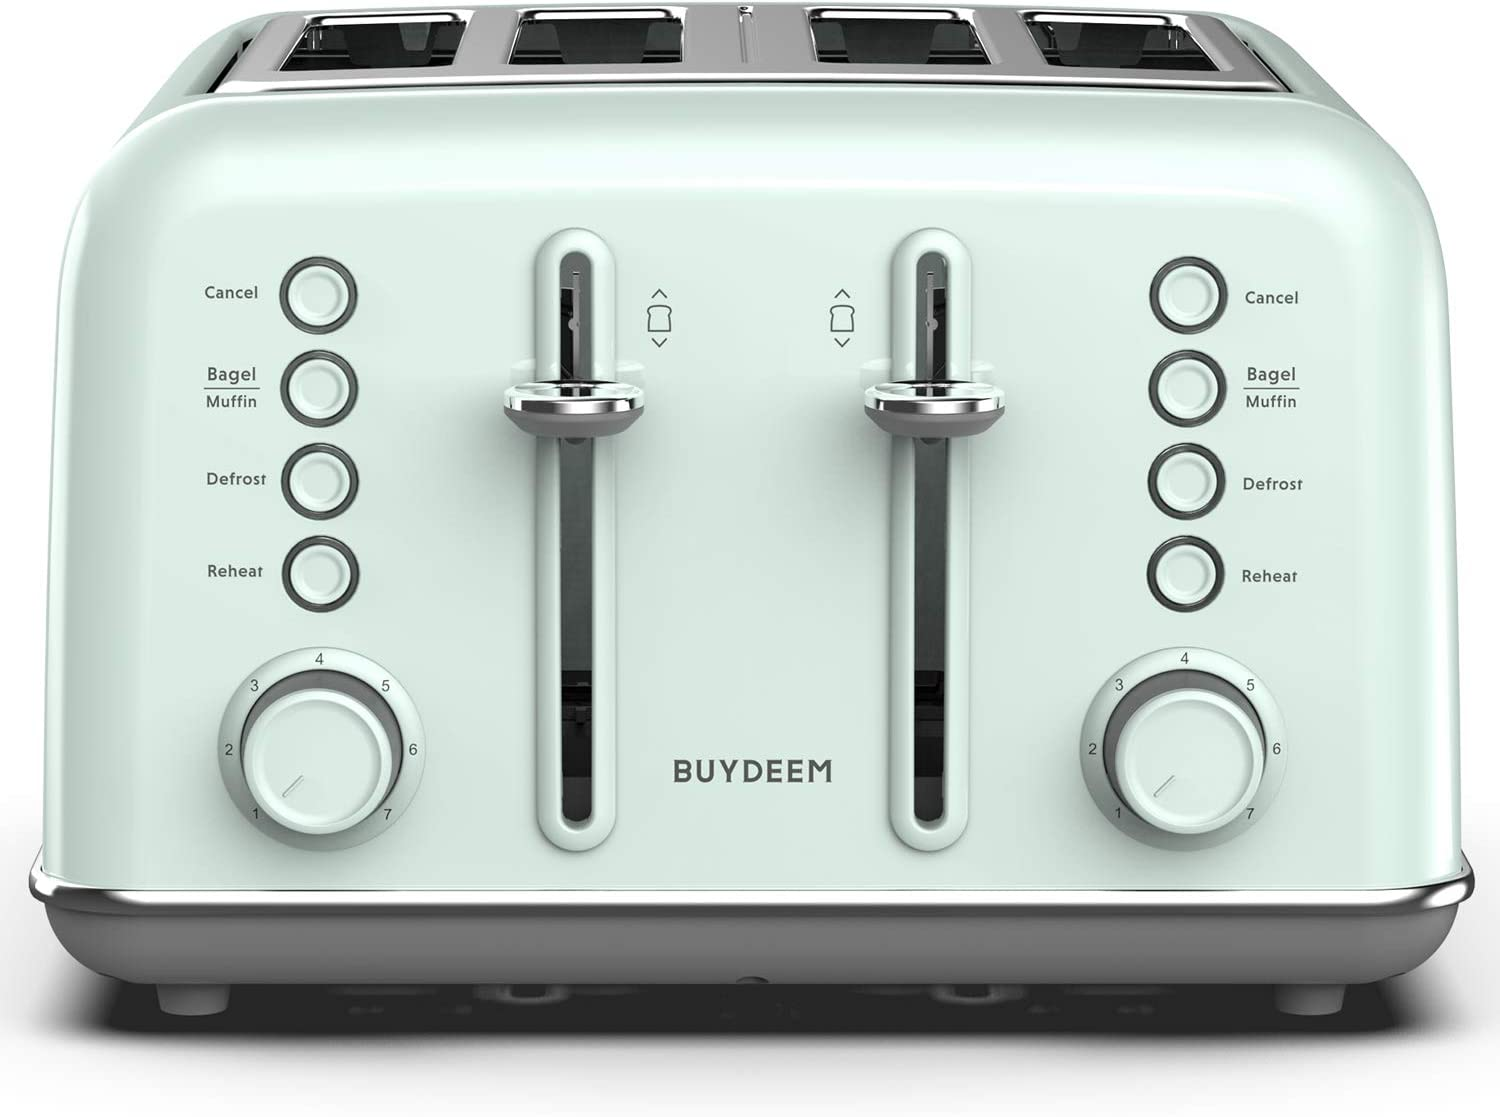 BUYDEEM DT-6B83G 4-Slice Toaster ?Extra Wide Slots?Teal Stainless Steel with High Lift Lever, Bagel and Muffin Function, 7-Shade Settings in Vintage Turquoise, Retro Pastel Green